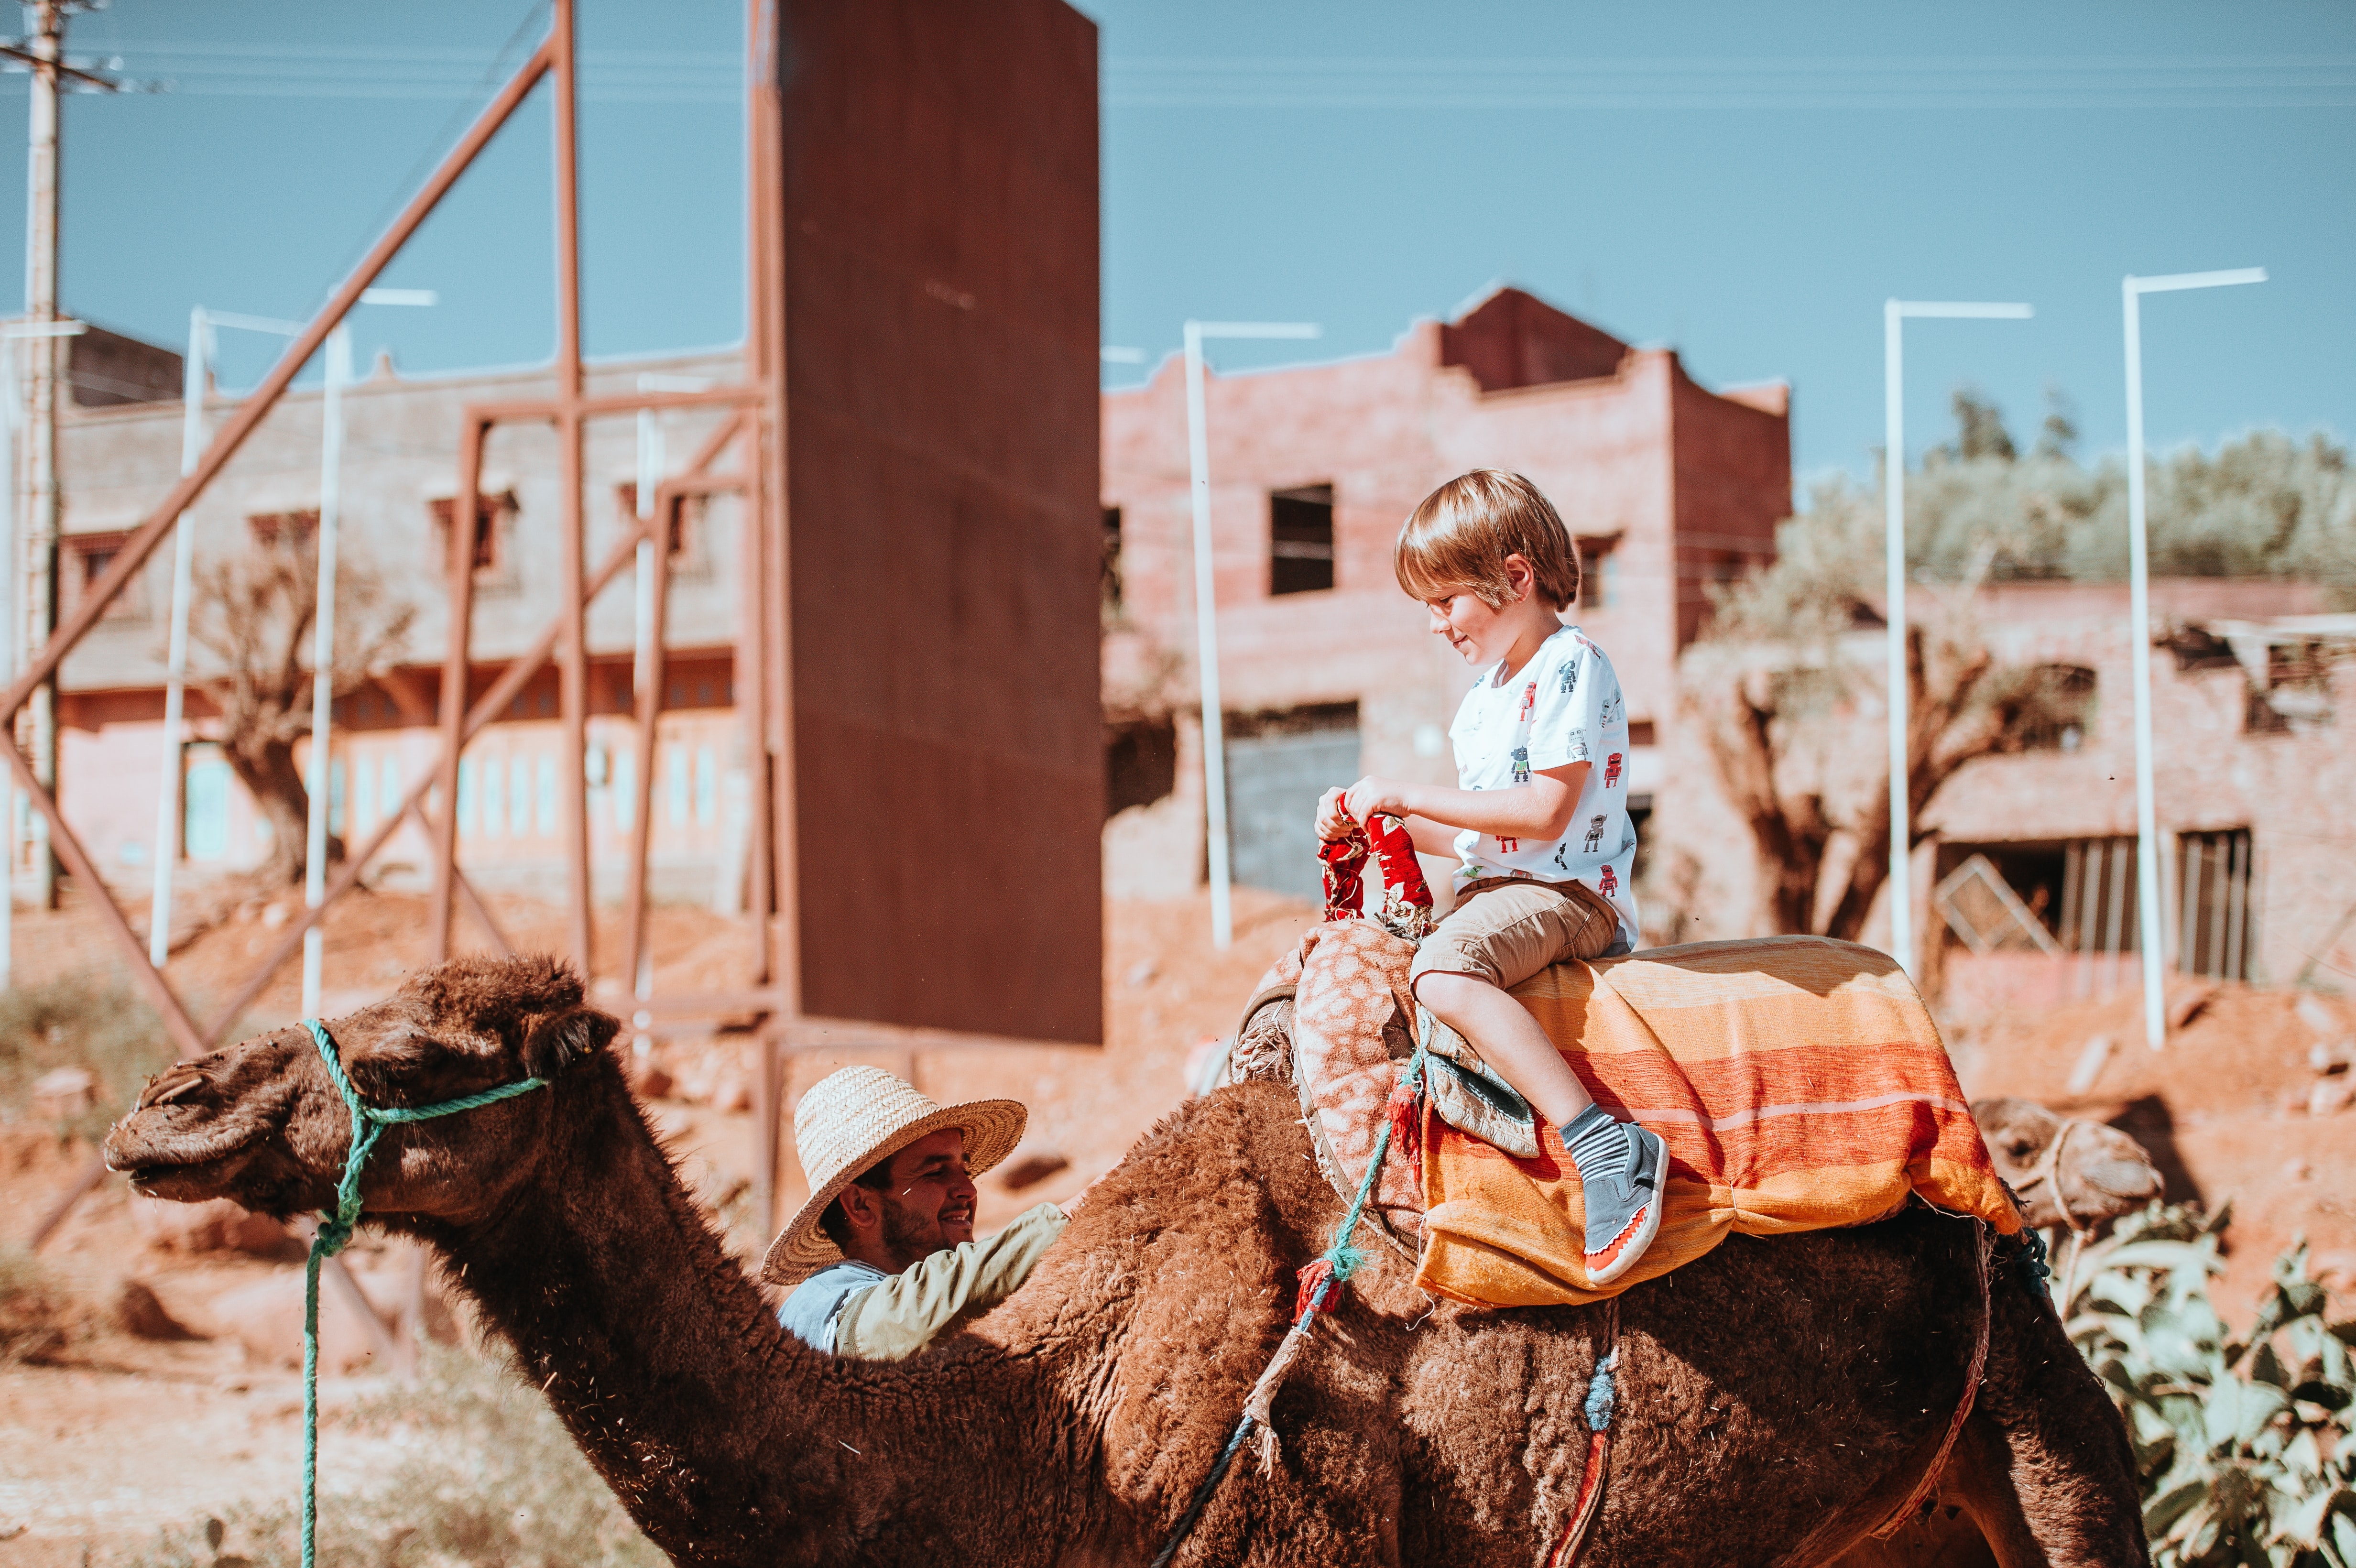 toddler riding brown camel while smiling during daytime